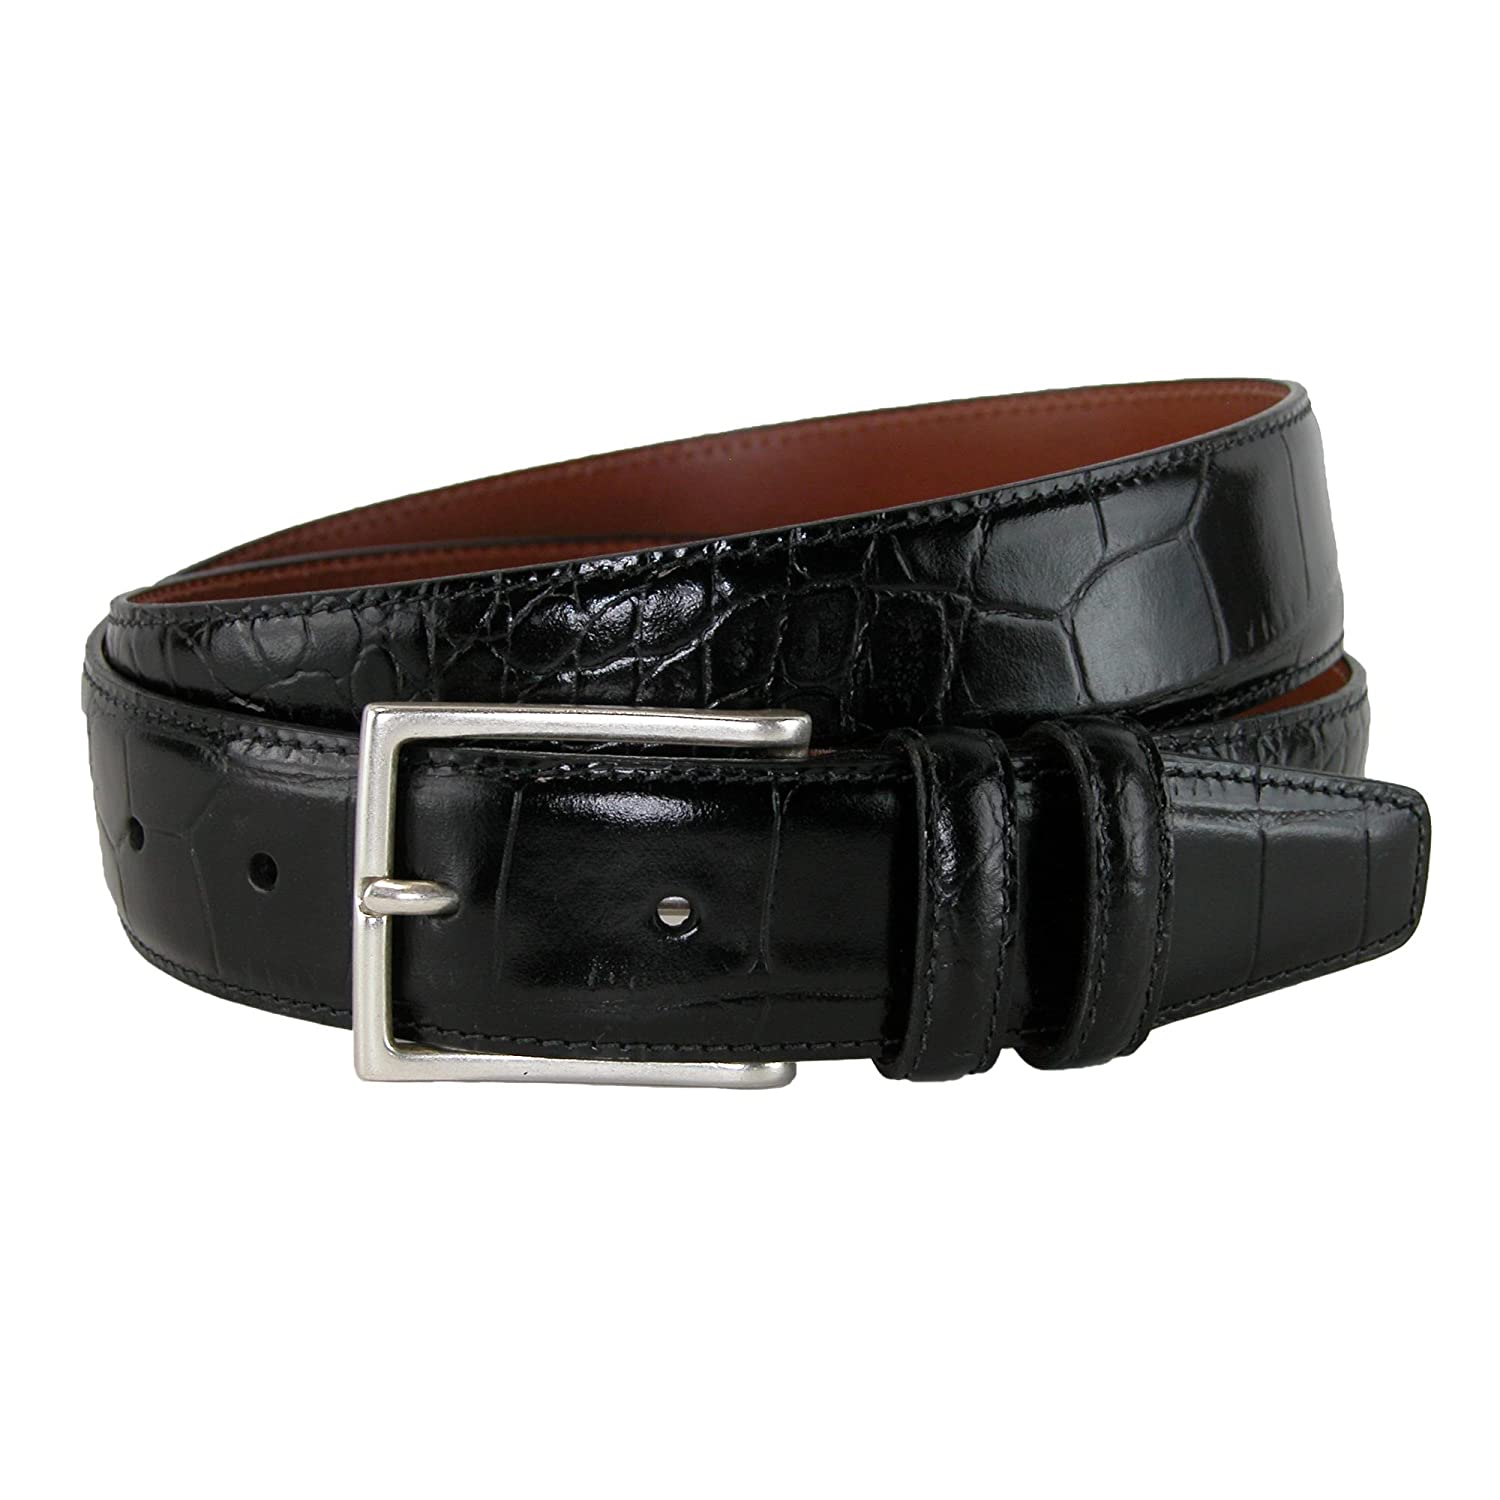 14ac6a6f6ff5 CrookhornDavis Dress Belt for Men, Tanned Leather Accessories (Crocodile)  at Amazon Men's Clothing store: